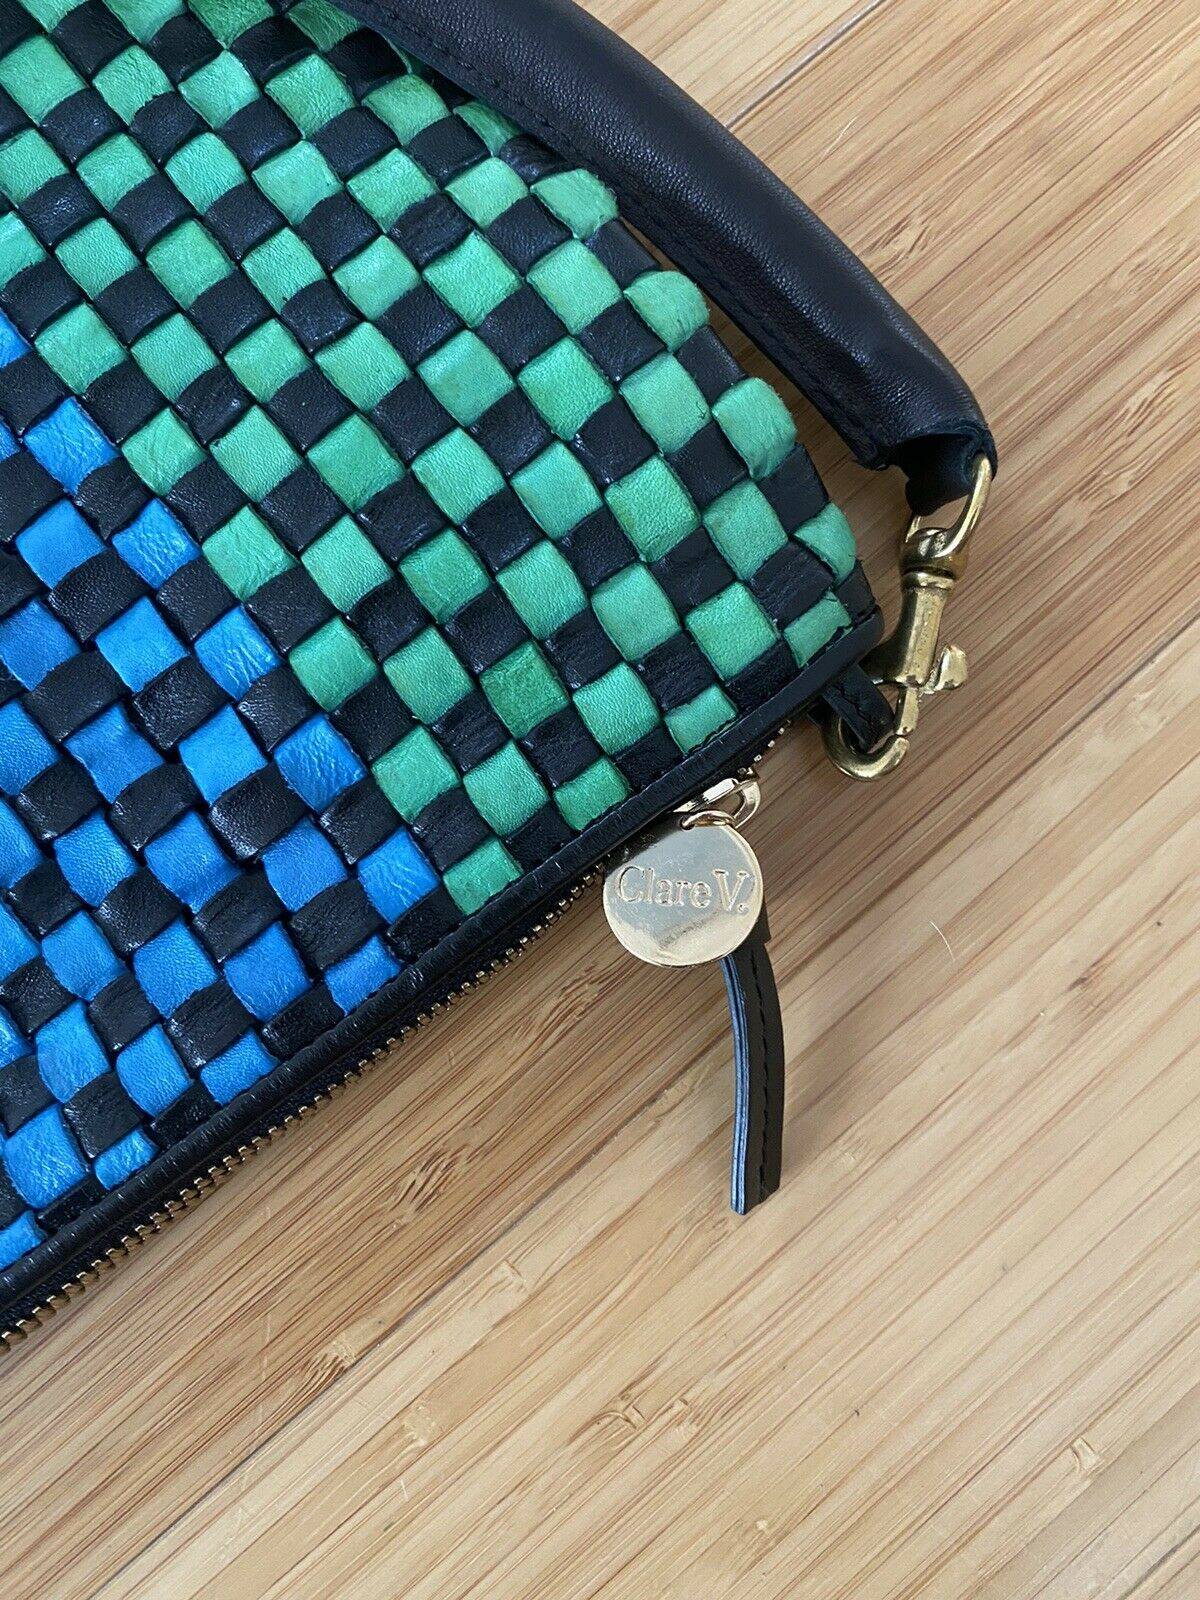 Claire V Woven Leather Clutch Bag - image 2